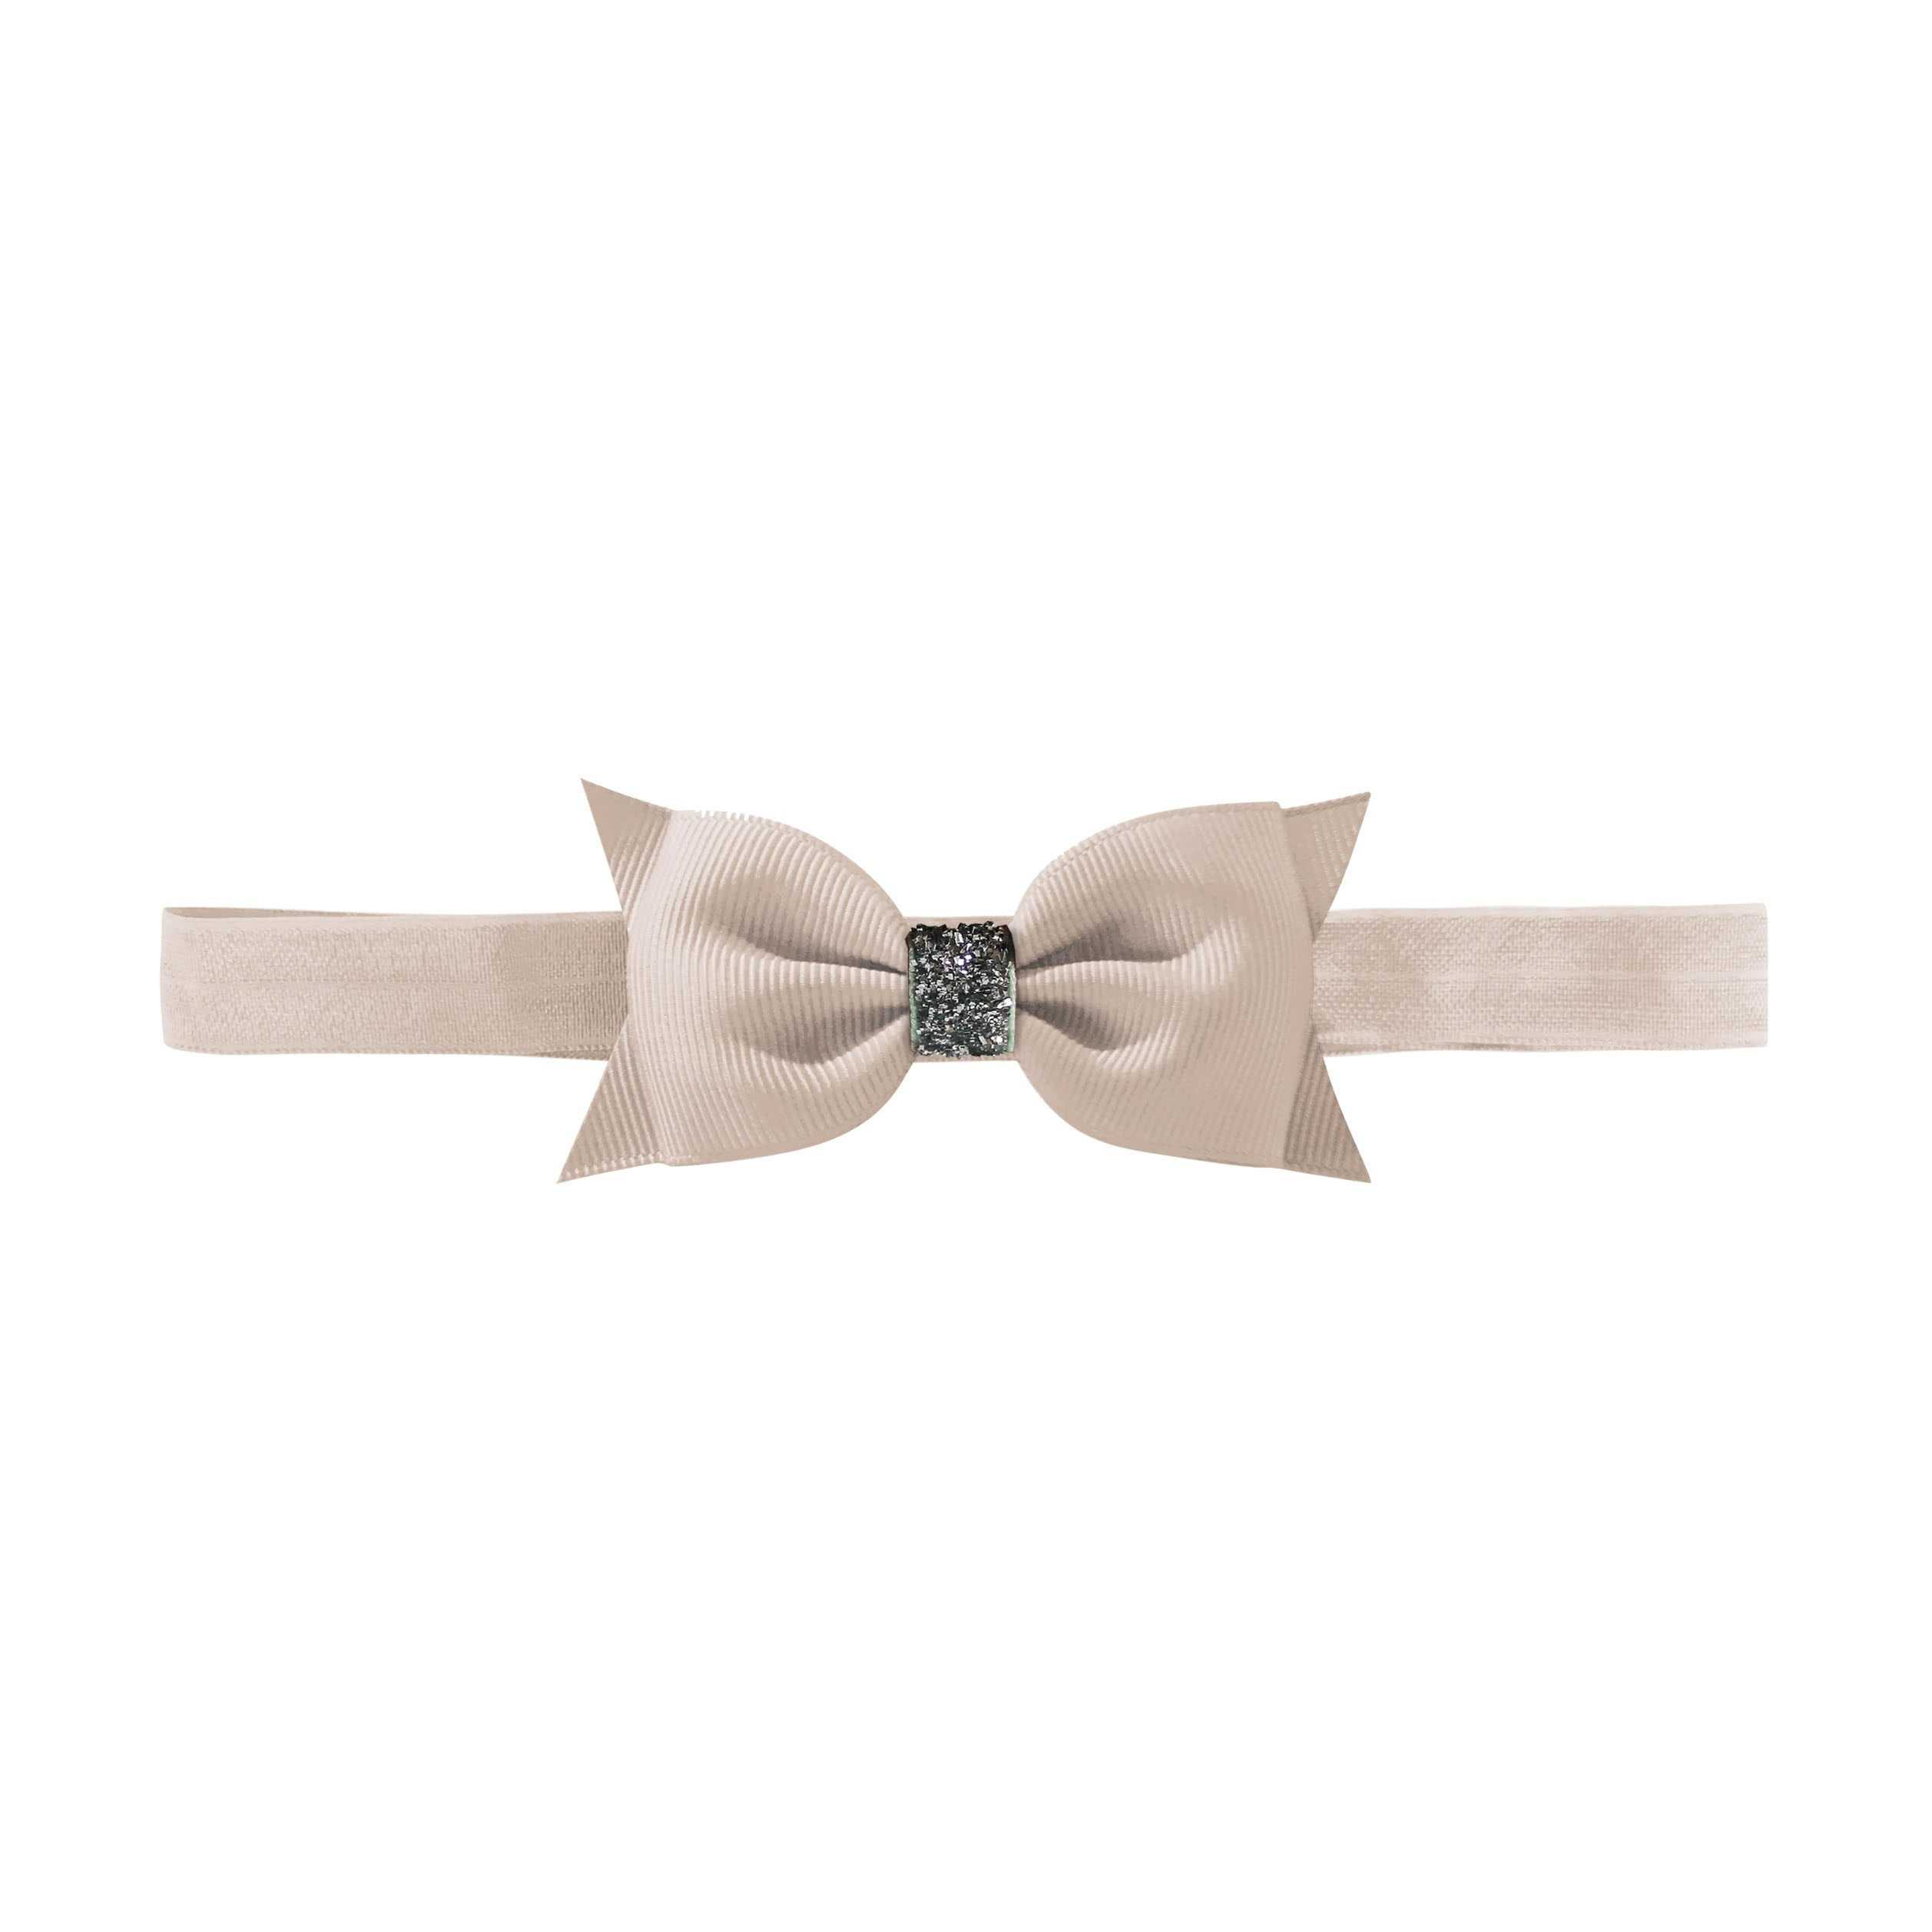 Image of   Double Bowtie bow - elastic hairband - carmandy glitter